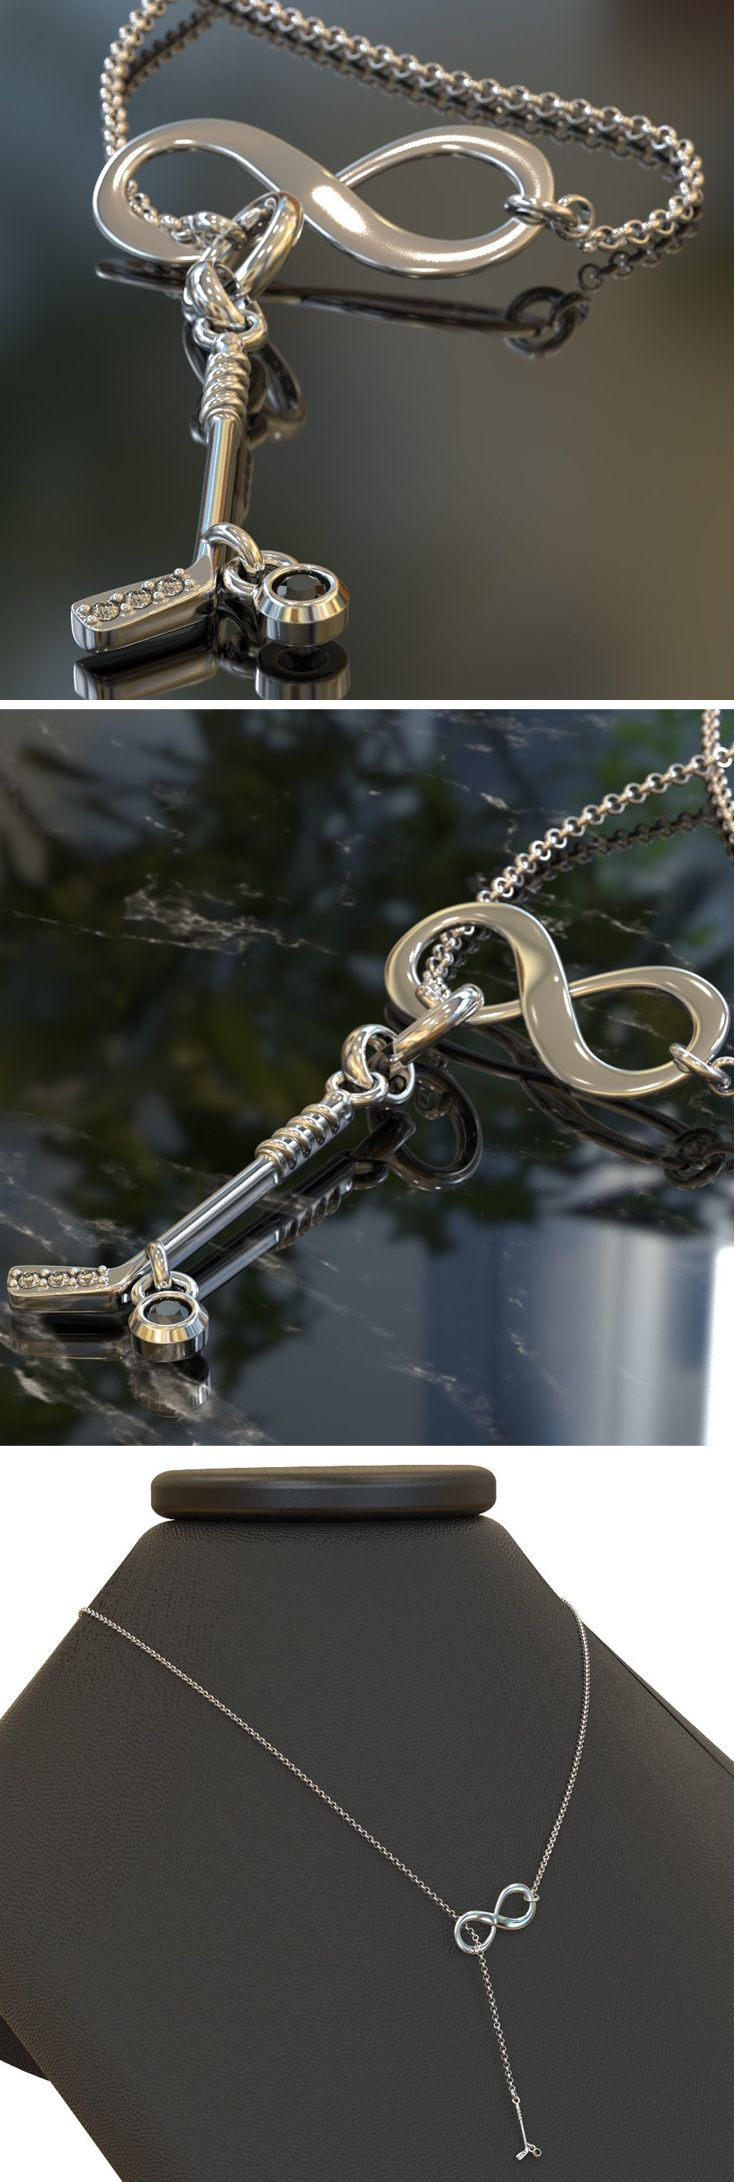 Super cute Infinity Hockey Necklace with stones on the blade and puck; makes a great gift for yourselr of a friend! Handcrafter by artisan jewelers in your choice of the highest quality Silver, Yellow Gold, or Rose Gold. Order yours here now!